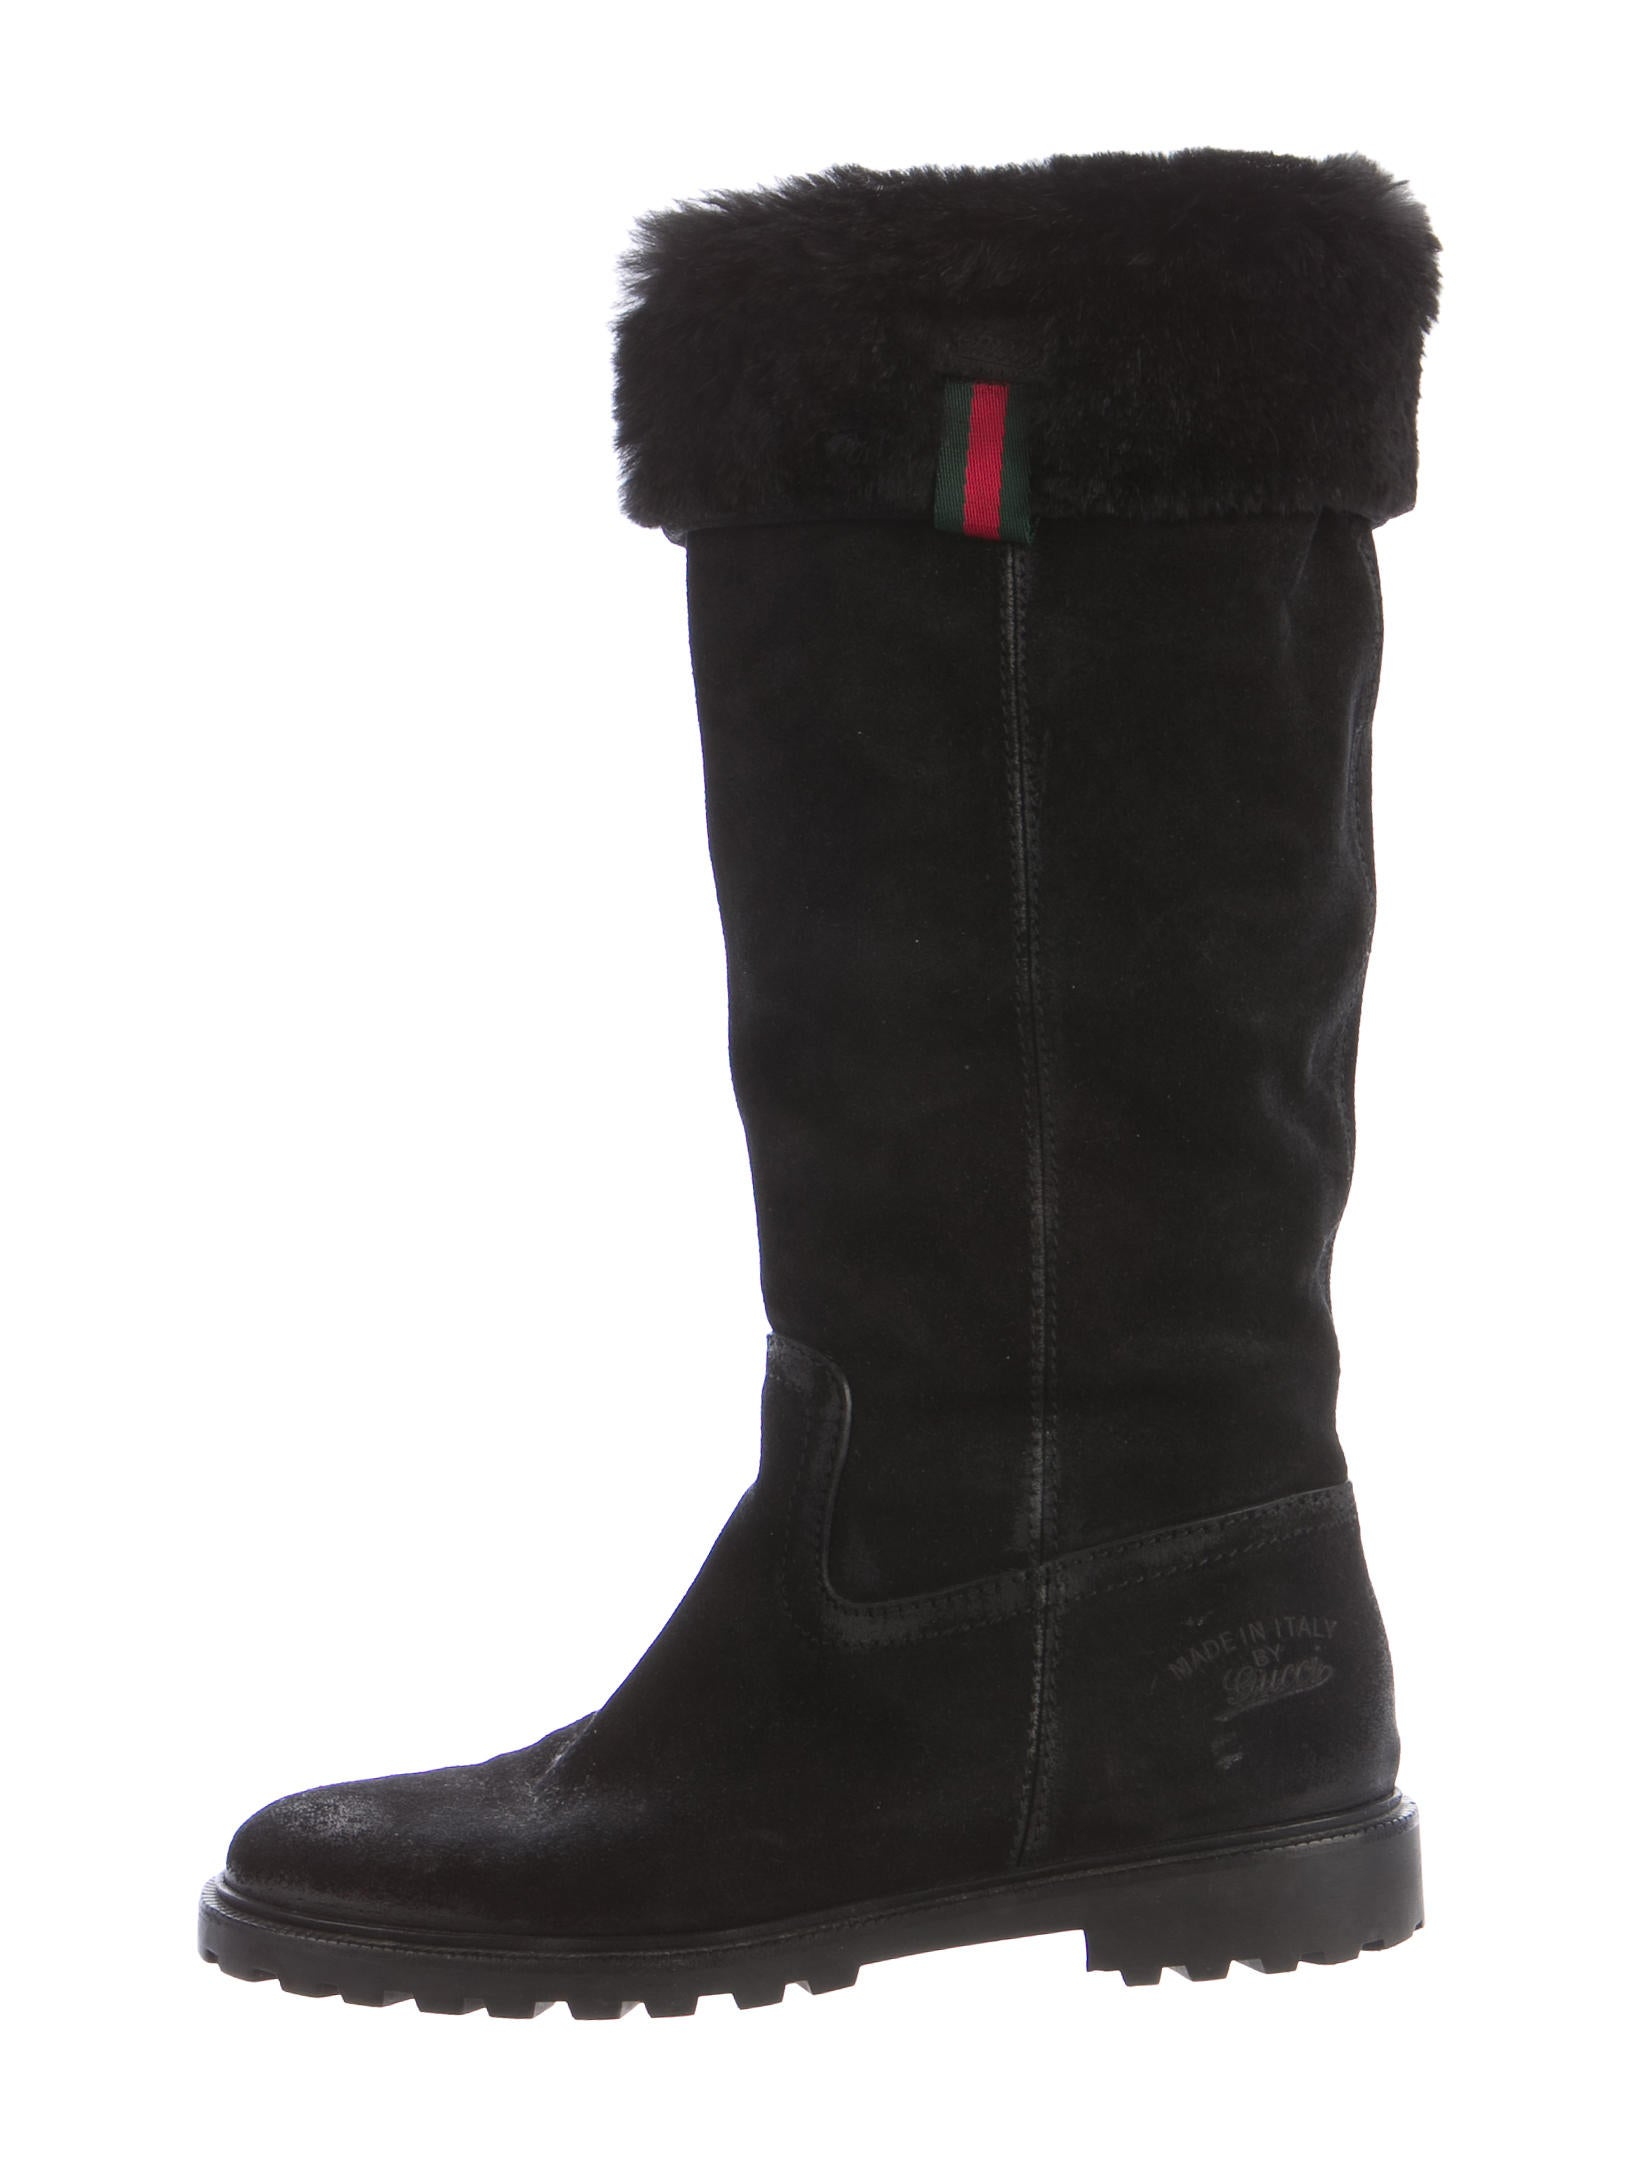 gucci rabbit fur lined knee high boots shoes guc156100